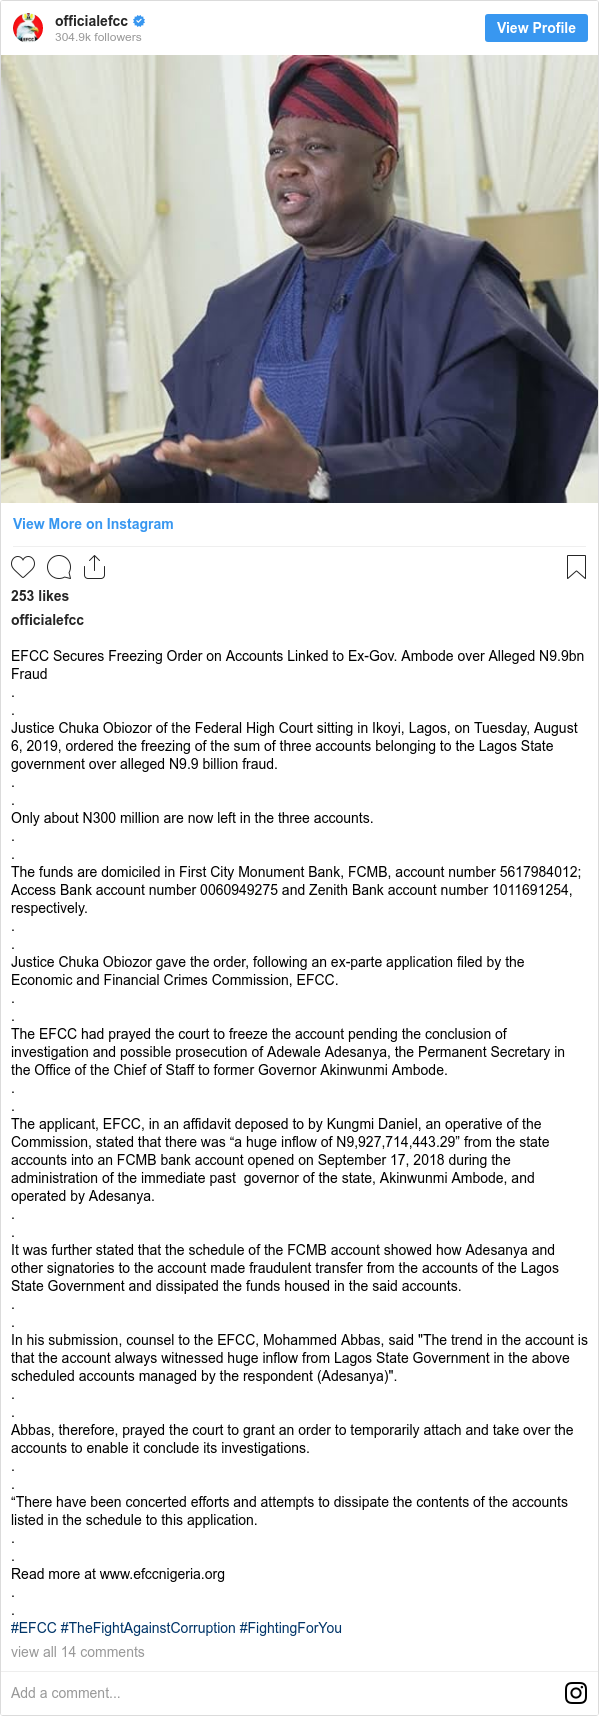 """Instagram post by officialefcc: EFCC Secures Freezing Order on Accounts Linked to Ex-Gov. Ambode over Alleged N9.9bn Fraud . . Justice Chuka Obiozor of the Federal High Court sitting in Ikoyi, Lagos, on Tuesday, August 6, 2019, ordered the freezing of the sum of three accounts belonging to the Lagos State government over alleged N9.9 billion fraud. . . Only about N300 million are now left in the three accounts. . . The funds are domiciled in First City Monument Bank, FCMB, account number 5617984012; Access Bank account number 0060949275 and Zenith Bank account number 1011691254, respectively. . . Justice Chuka Obiozor gave the order, following an ex-parte application filed by the Economic and Financial Crimes Commission, EFCC. . . The EFCC had prayed the court to freeze the account pending the conclusion of investigation and possible prosecution of Adewale Adesanya, the Permanent Secretary in the Office of the Chief of Staff to former Governor Akinwunmi Ambode. . . The applicant, EFCC, in an affidavit deposed to by Kungmi Daniel, an operative of the Commission, stated that there was """"a huge inflow of N9,927,714,443.29"""" from the state accounts into an FCMB bank account opened on September 17, 2018 during the administration of the immediate pastgovernor of the state, Akinwunmi Ambode, and operated by Adesanya. . . It was further stated that the schedule of the FCMB account showed how Adesanya and other signatories to the account made fraudulent transfer from the accounts of the Lagos State Government and dissipated the funds housed in the said accounts. . . In his submission, counsel to the EFCC, Mohammed Abbas, said """"The trend in the account is that the account always witnessed huge inflow from Lagos State Government in the above scheduled accounts managed by the respondent (Adesanya)"""". . . Abbas, therefore, prayed the court to grant an order to temporarily attach and take over the accounts to enable it conclude its investigations. . . """"There have been concerted effo"""